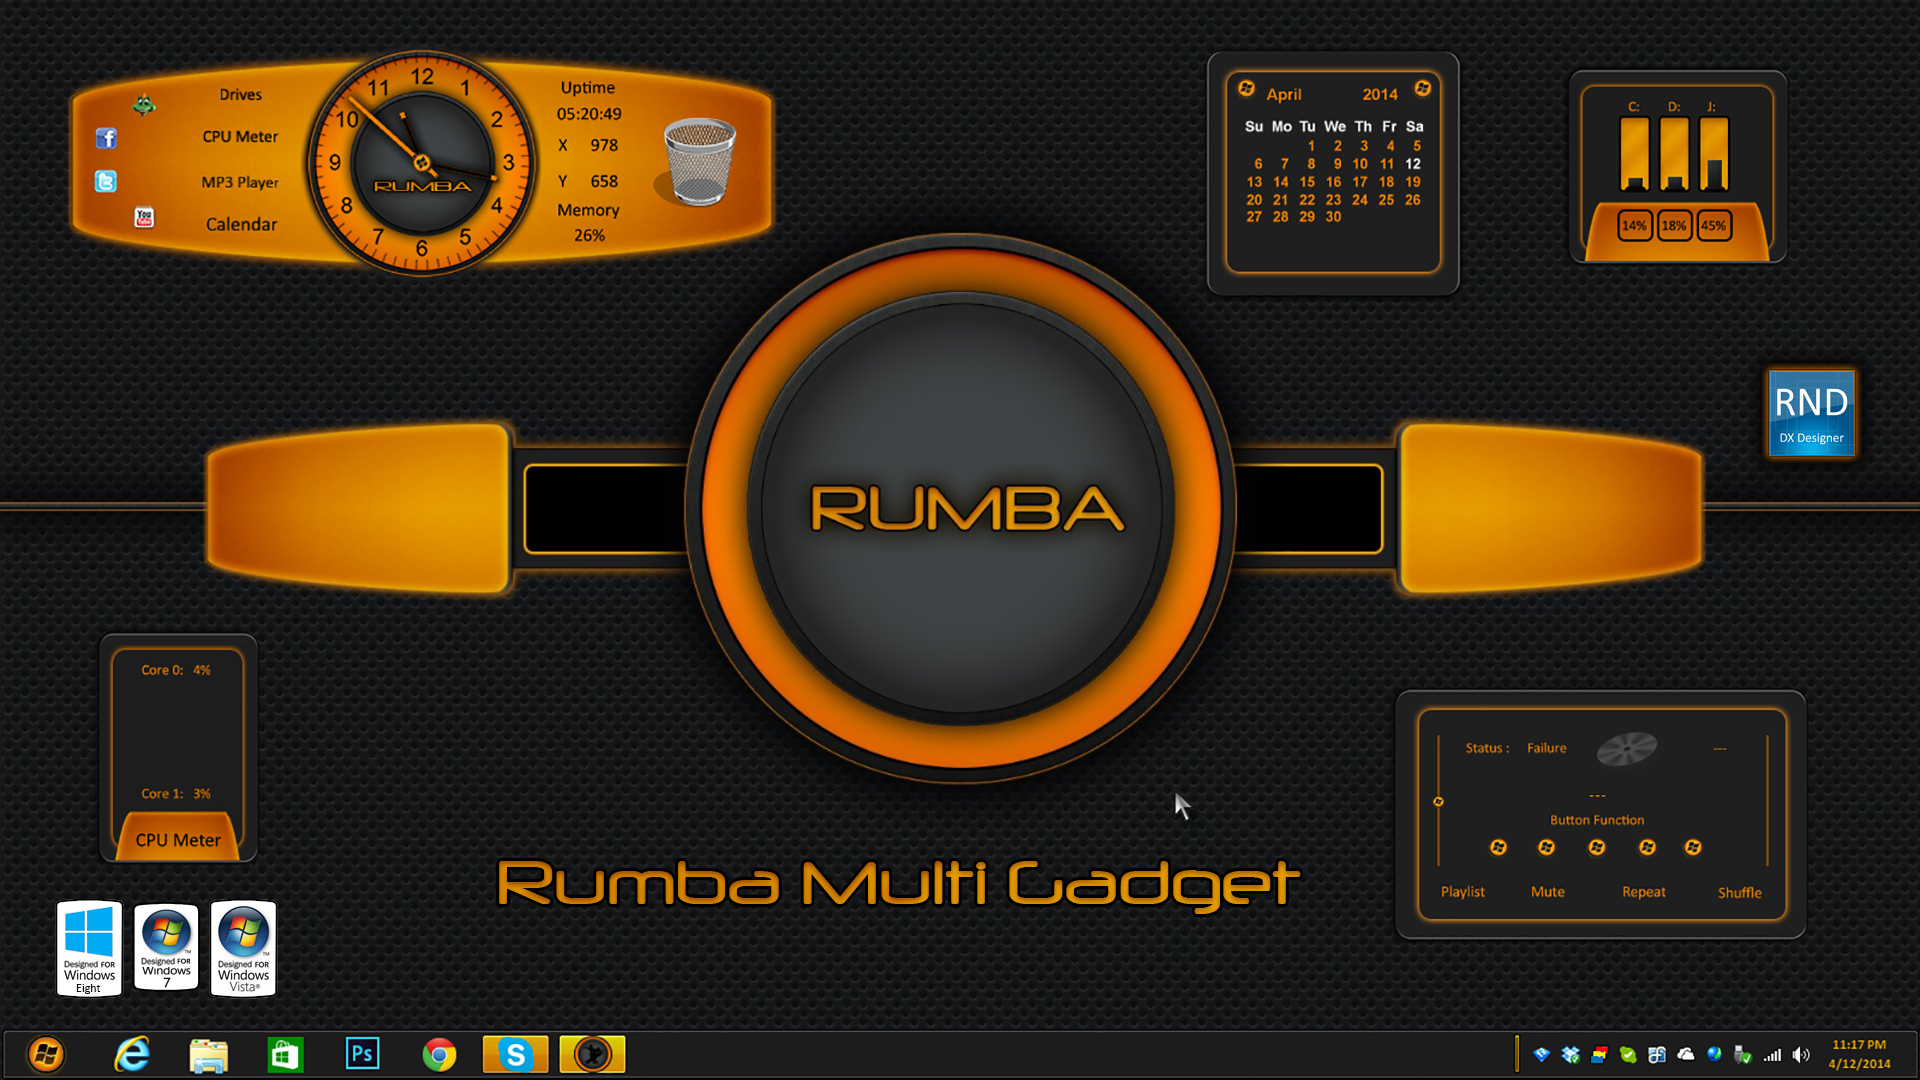 Rumba Multi Gadget